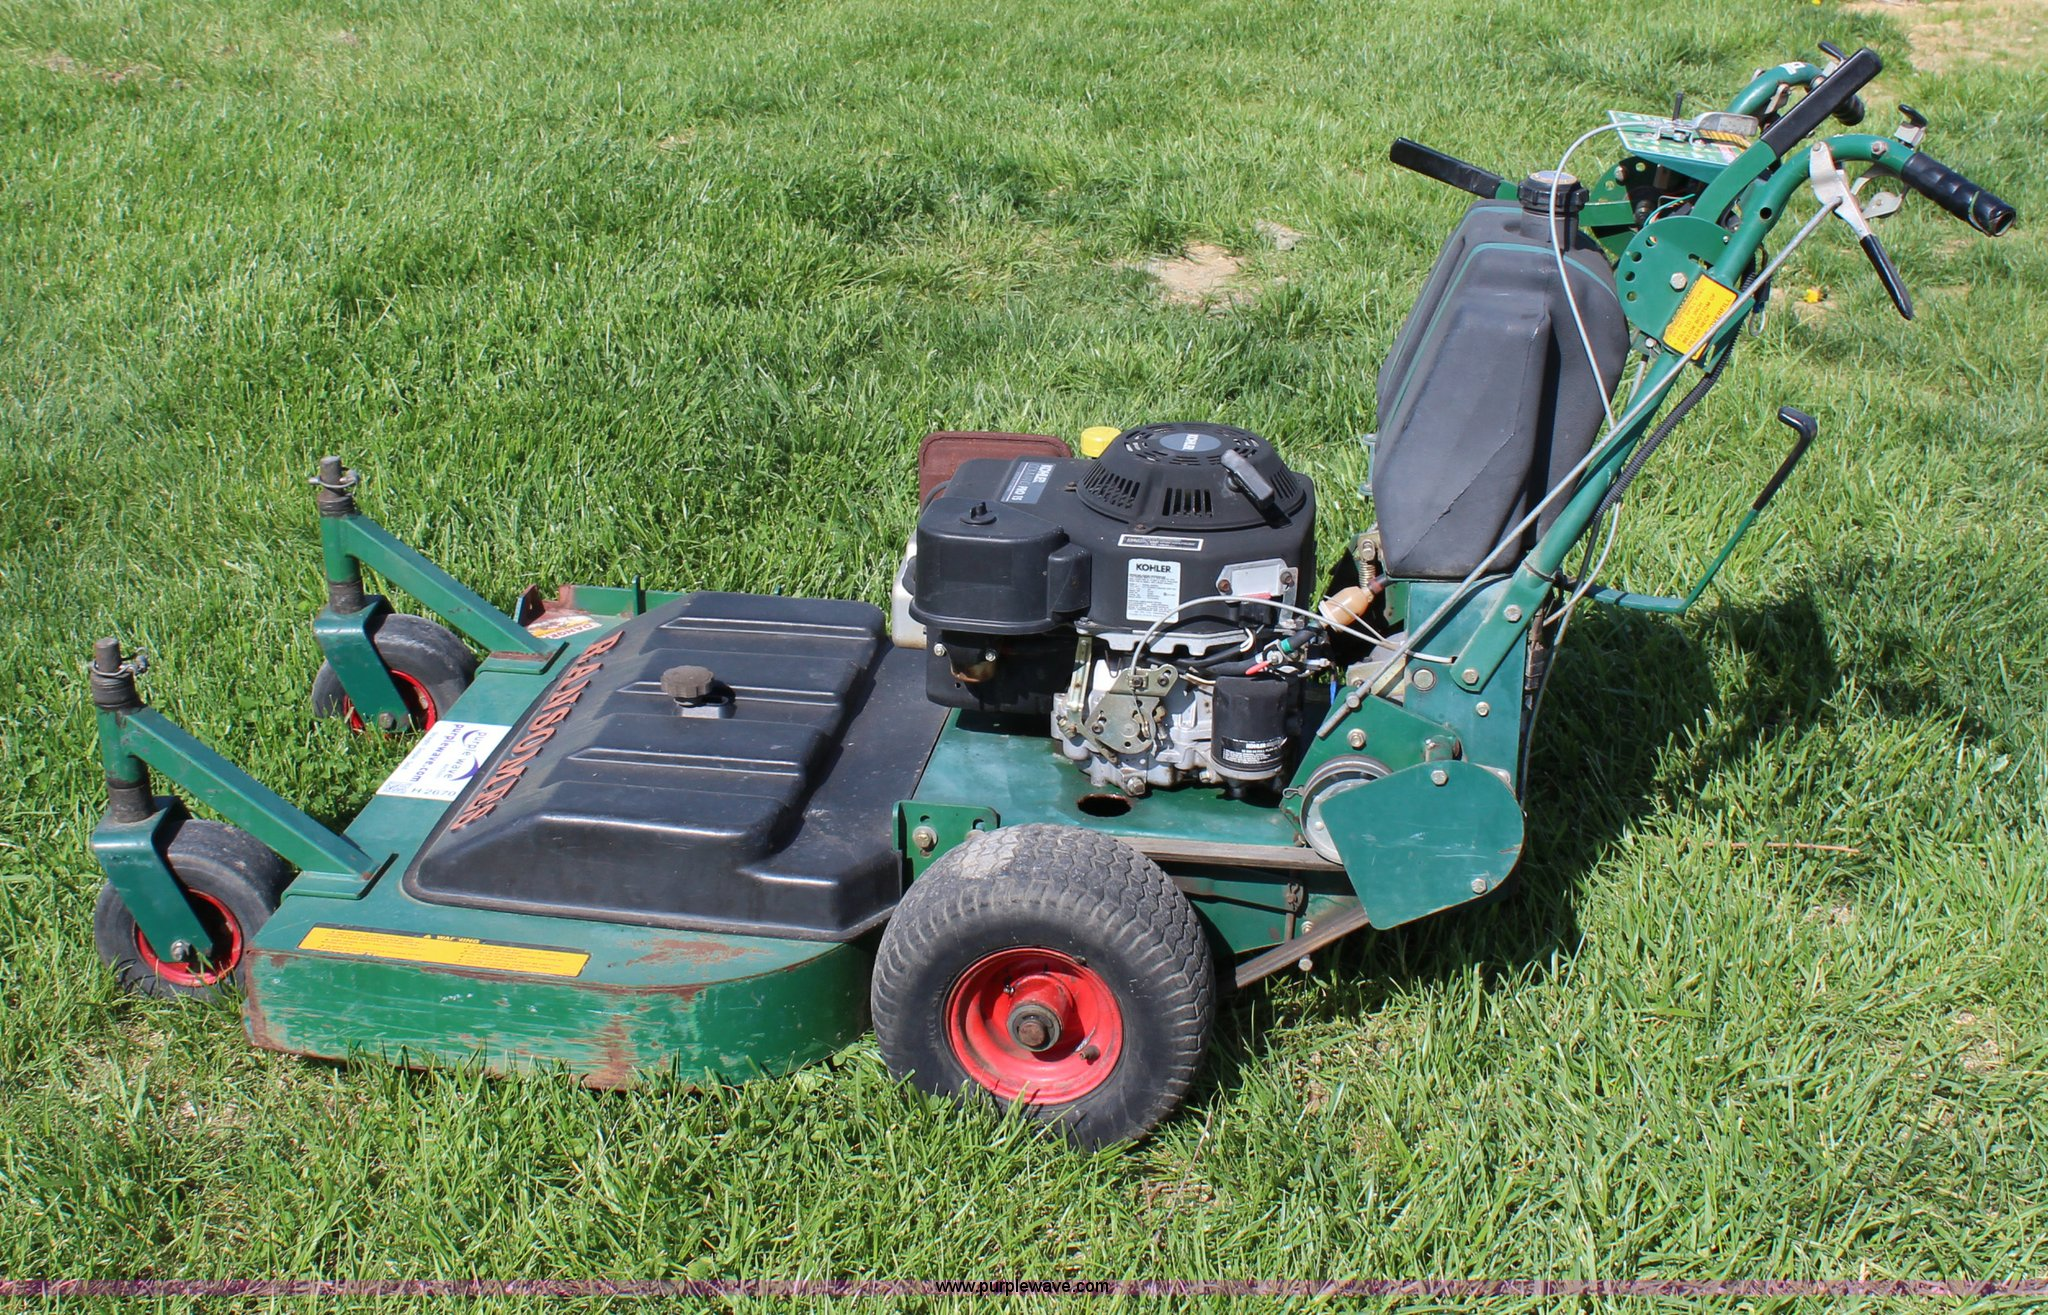 ransomes walk behind mower item h2670 sold may 28 vehic rh purplewave com ransomes mower parts lookup ransomes mower manuals mk4